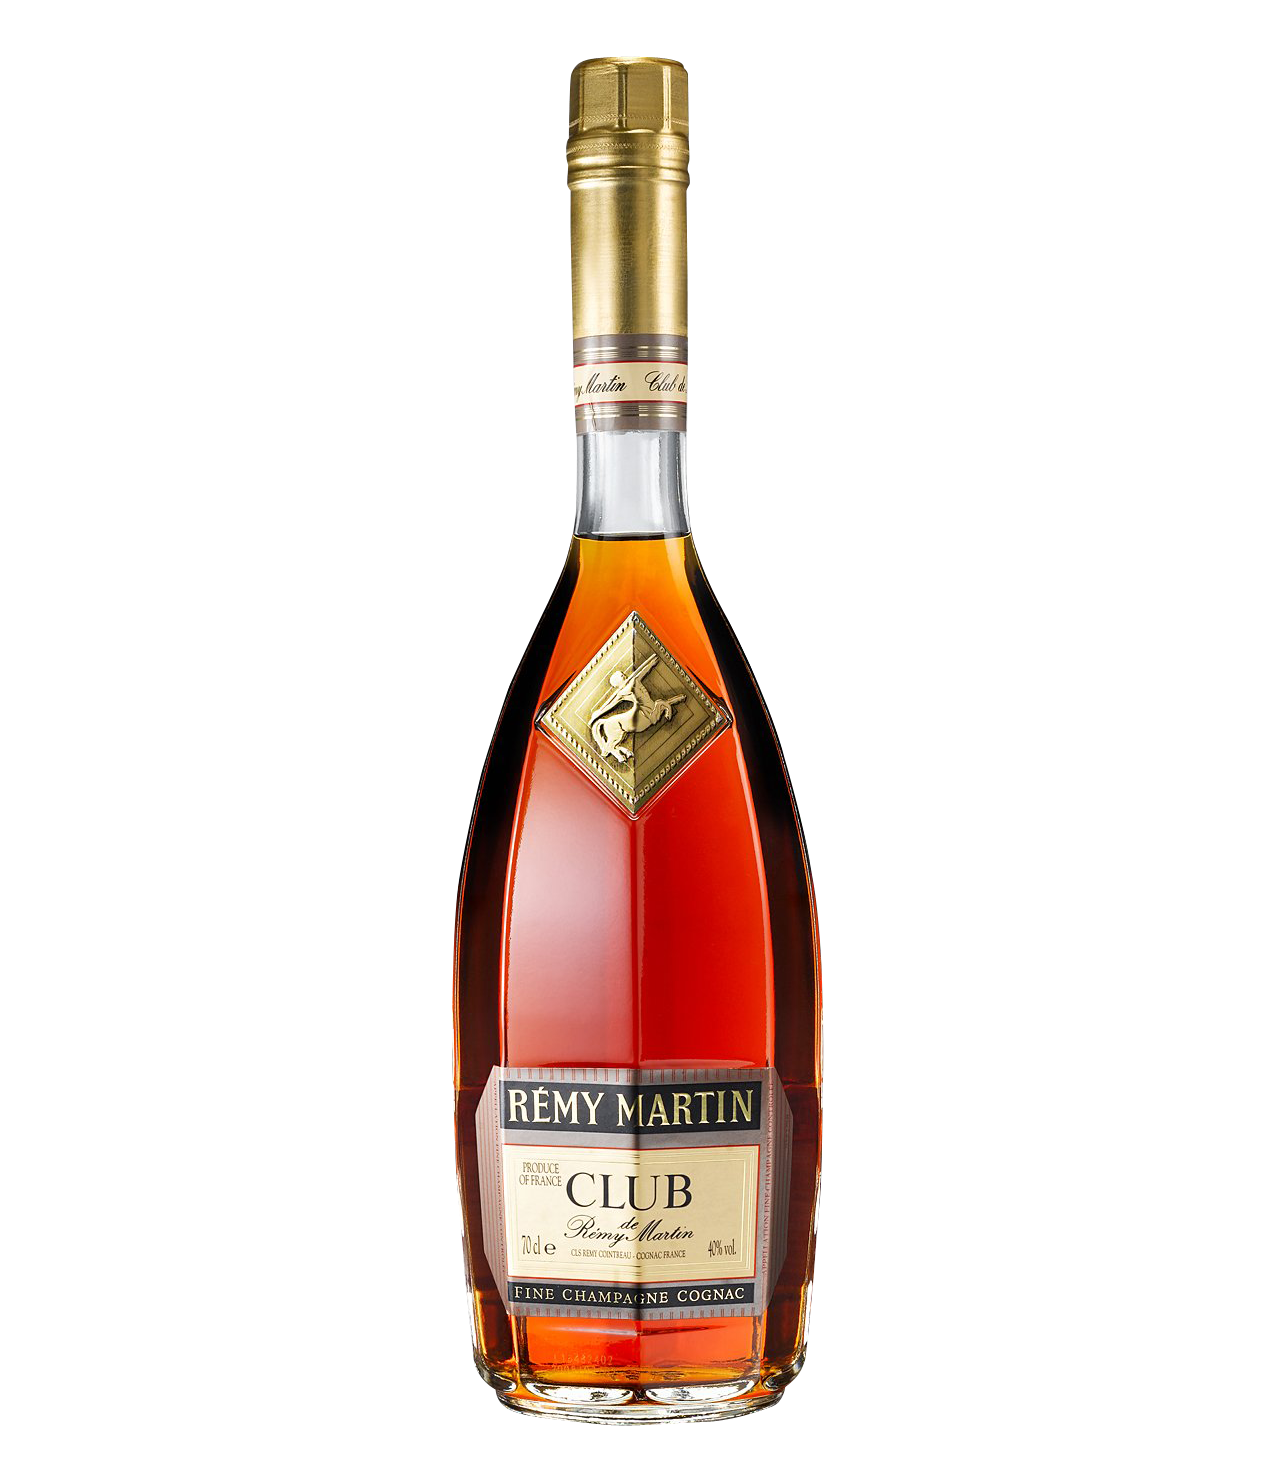 Remy Martin club brand filled glass bottle PNG image, free download